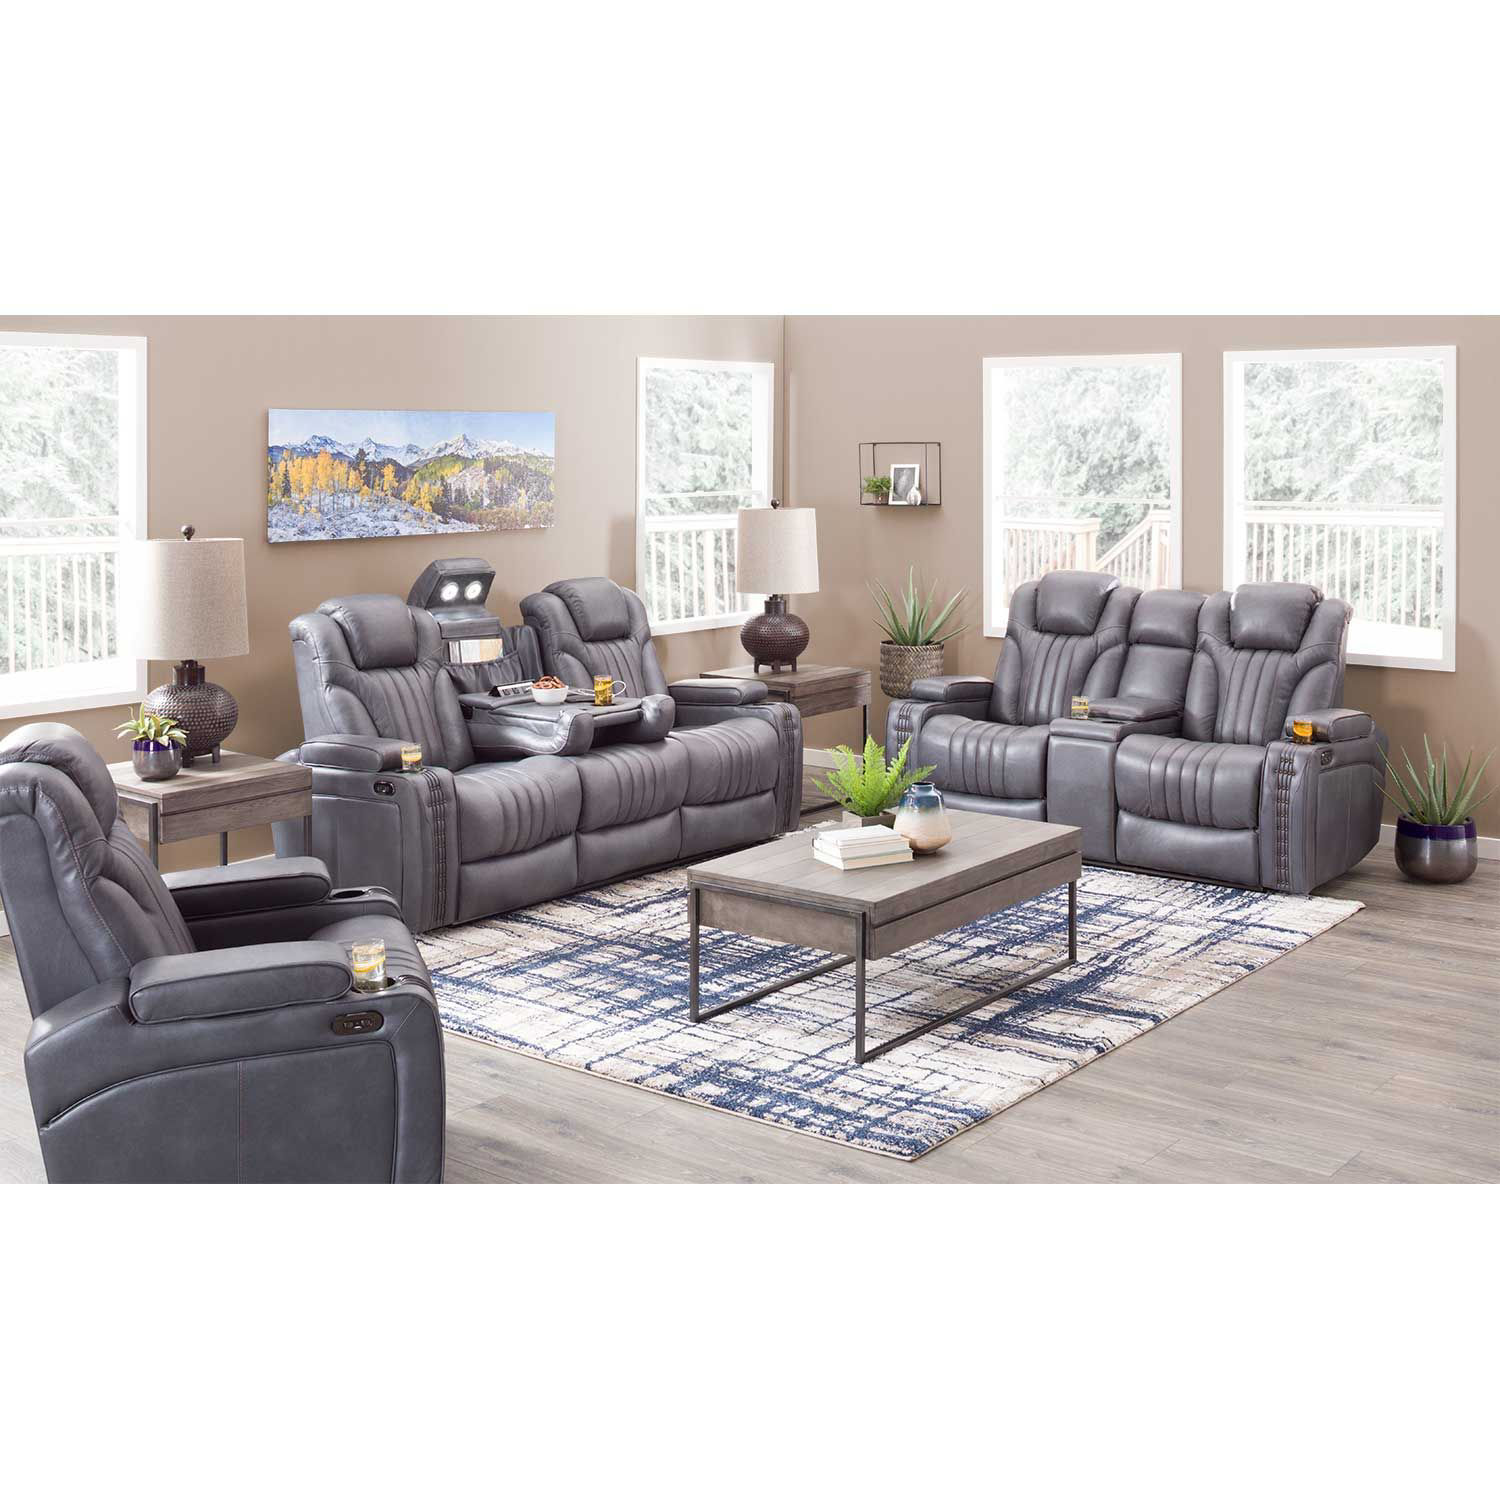 Picture of Outsider Gunmetal Gray Leather Power Reclining Sofa with Drop Table and Power Adjustable Headrest